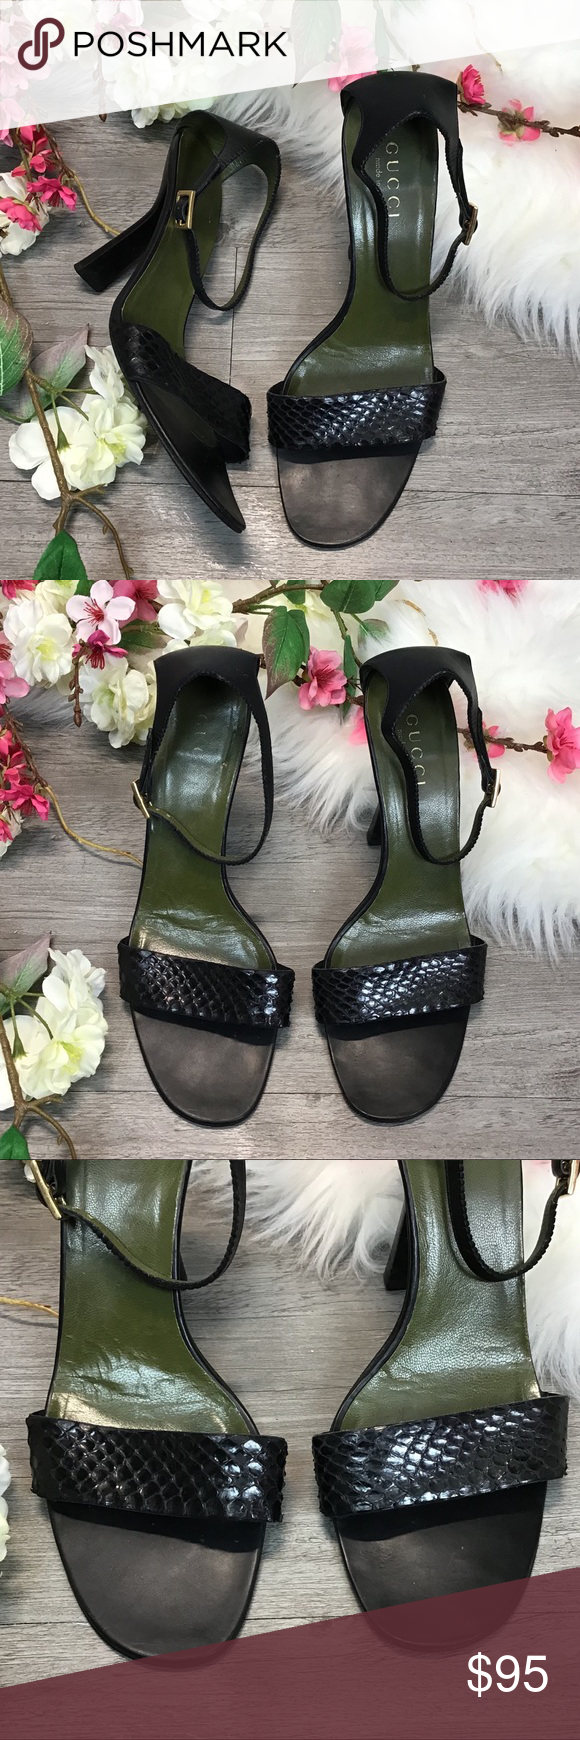 bc7124eef Spotted while shopping on Poshmark: GUCCI Snake Heel Sandals! #poshmark  #fashion #shopping #style #Gucci #Shoes